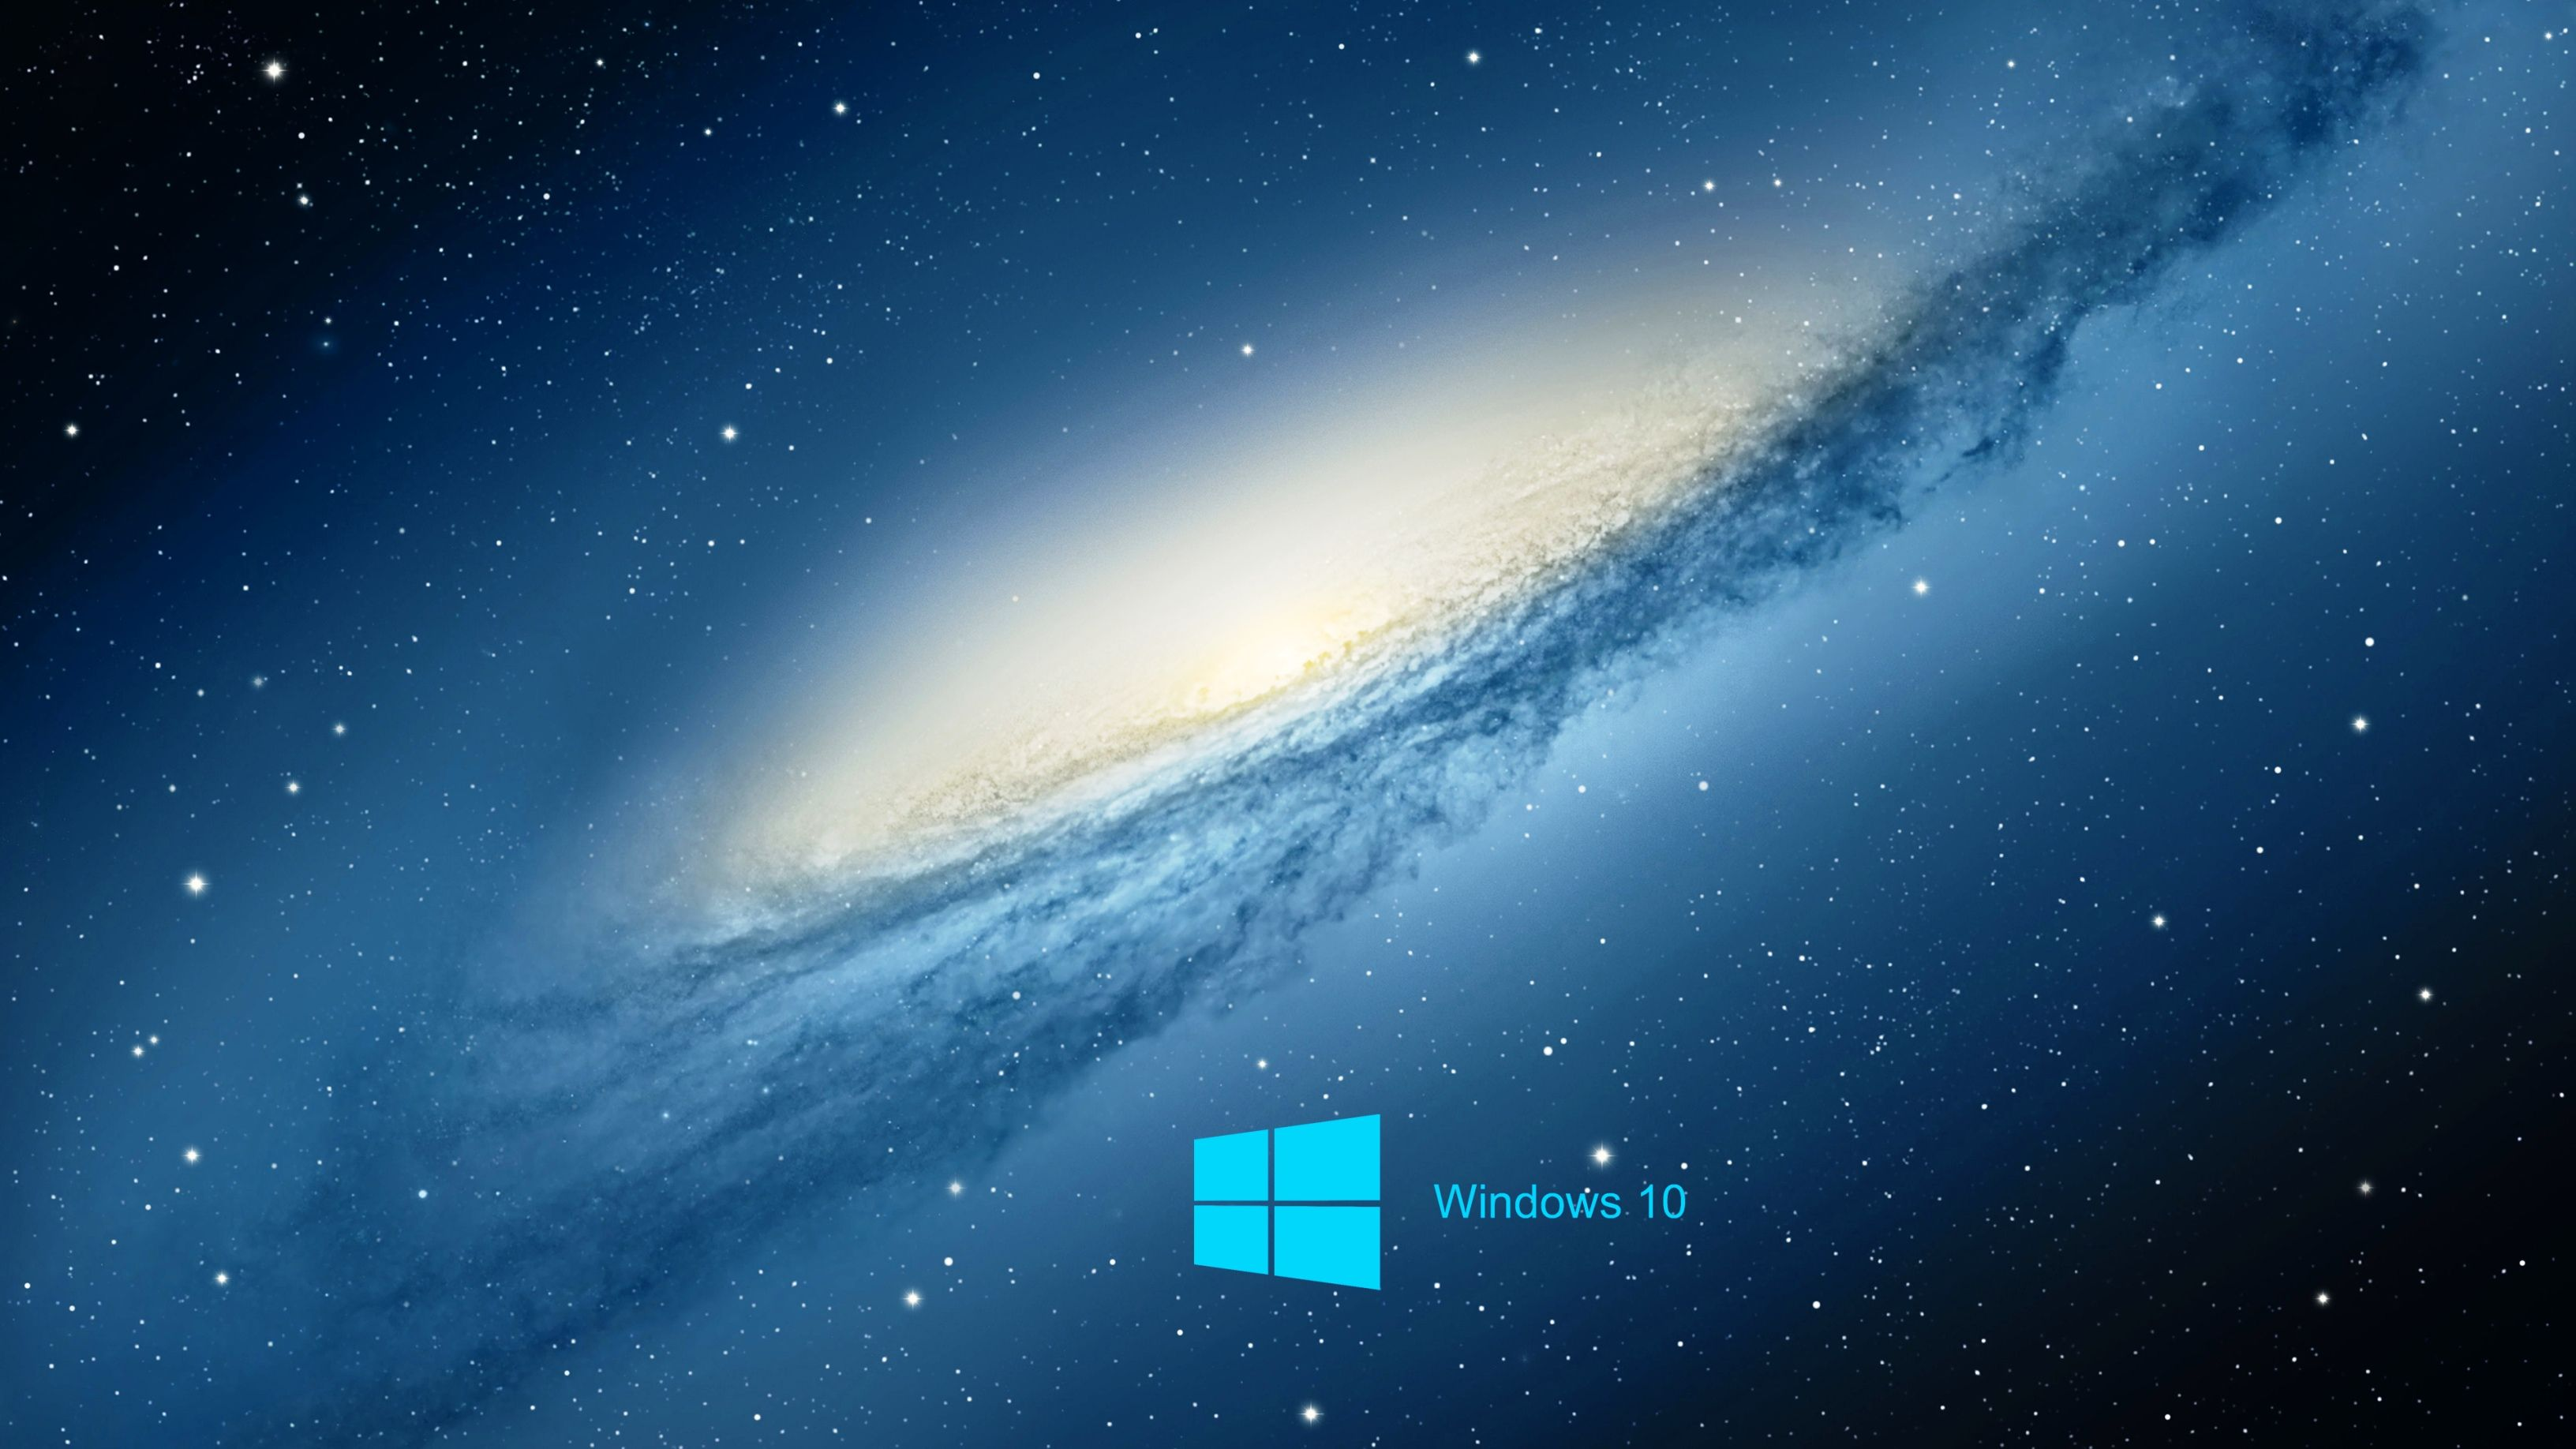 Windows 10 Ultra Hd Wallpaper Windows 10 Best Background